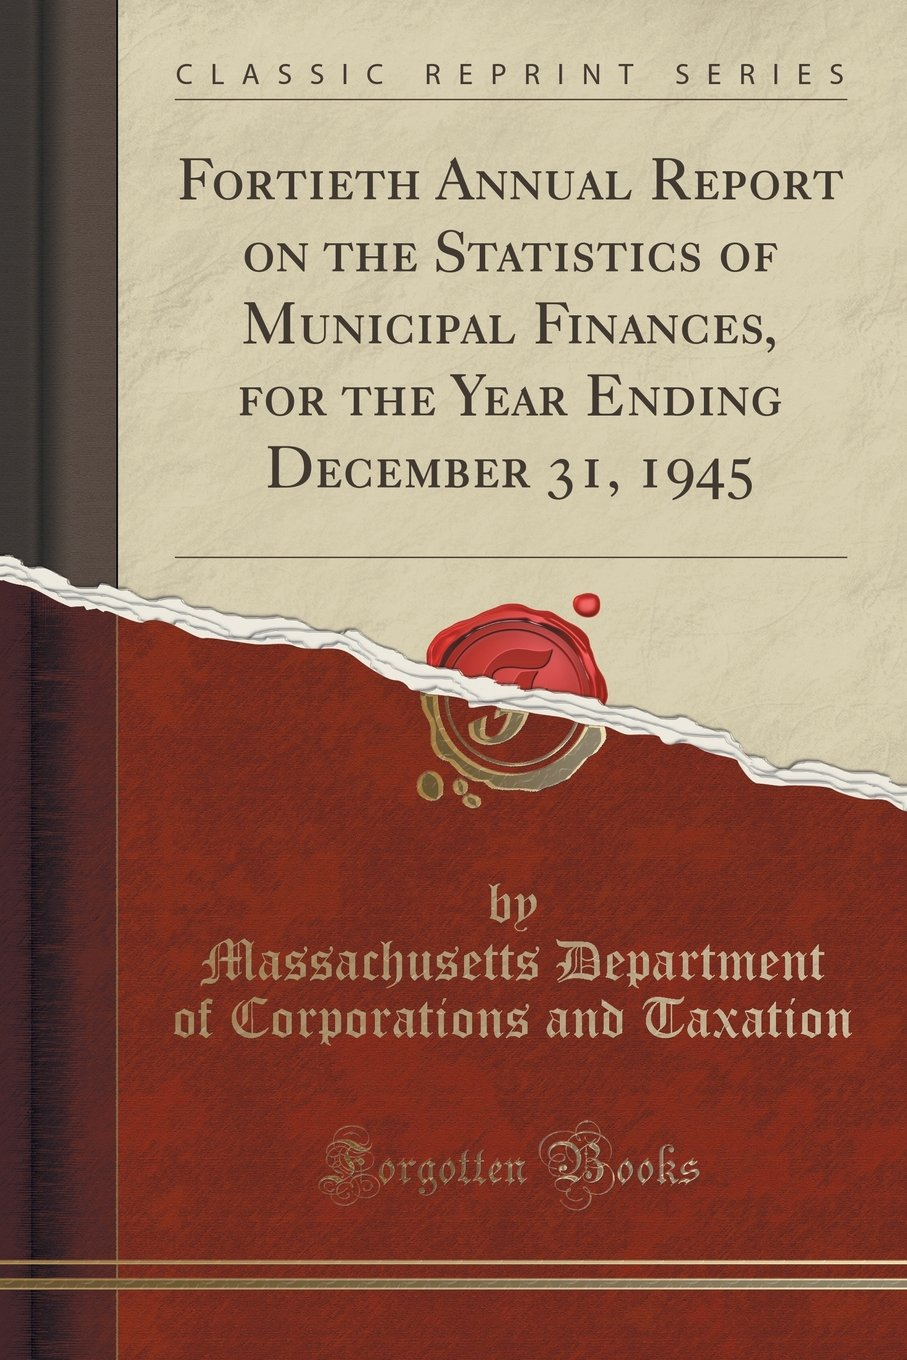 Read Online Fortieth Annual Report on the Statistics of Municipal Finances, for the Year Ending December 31, 1945 (Classic Reprint) PDF